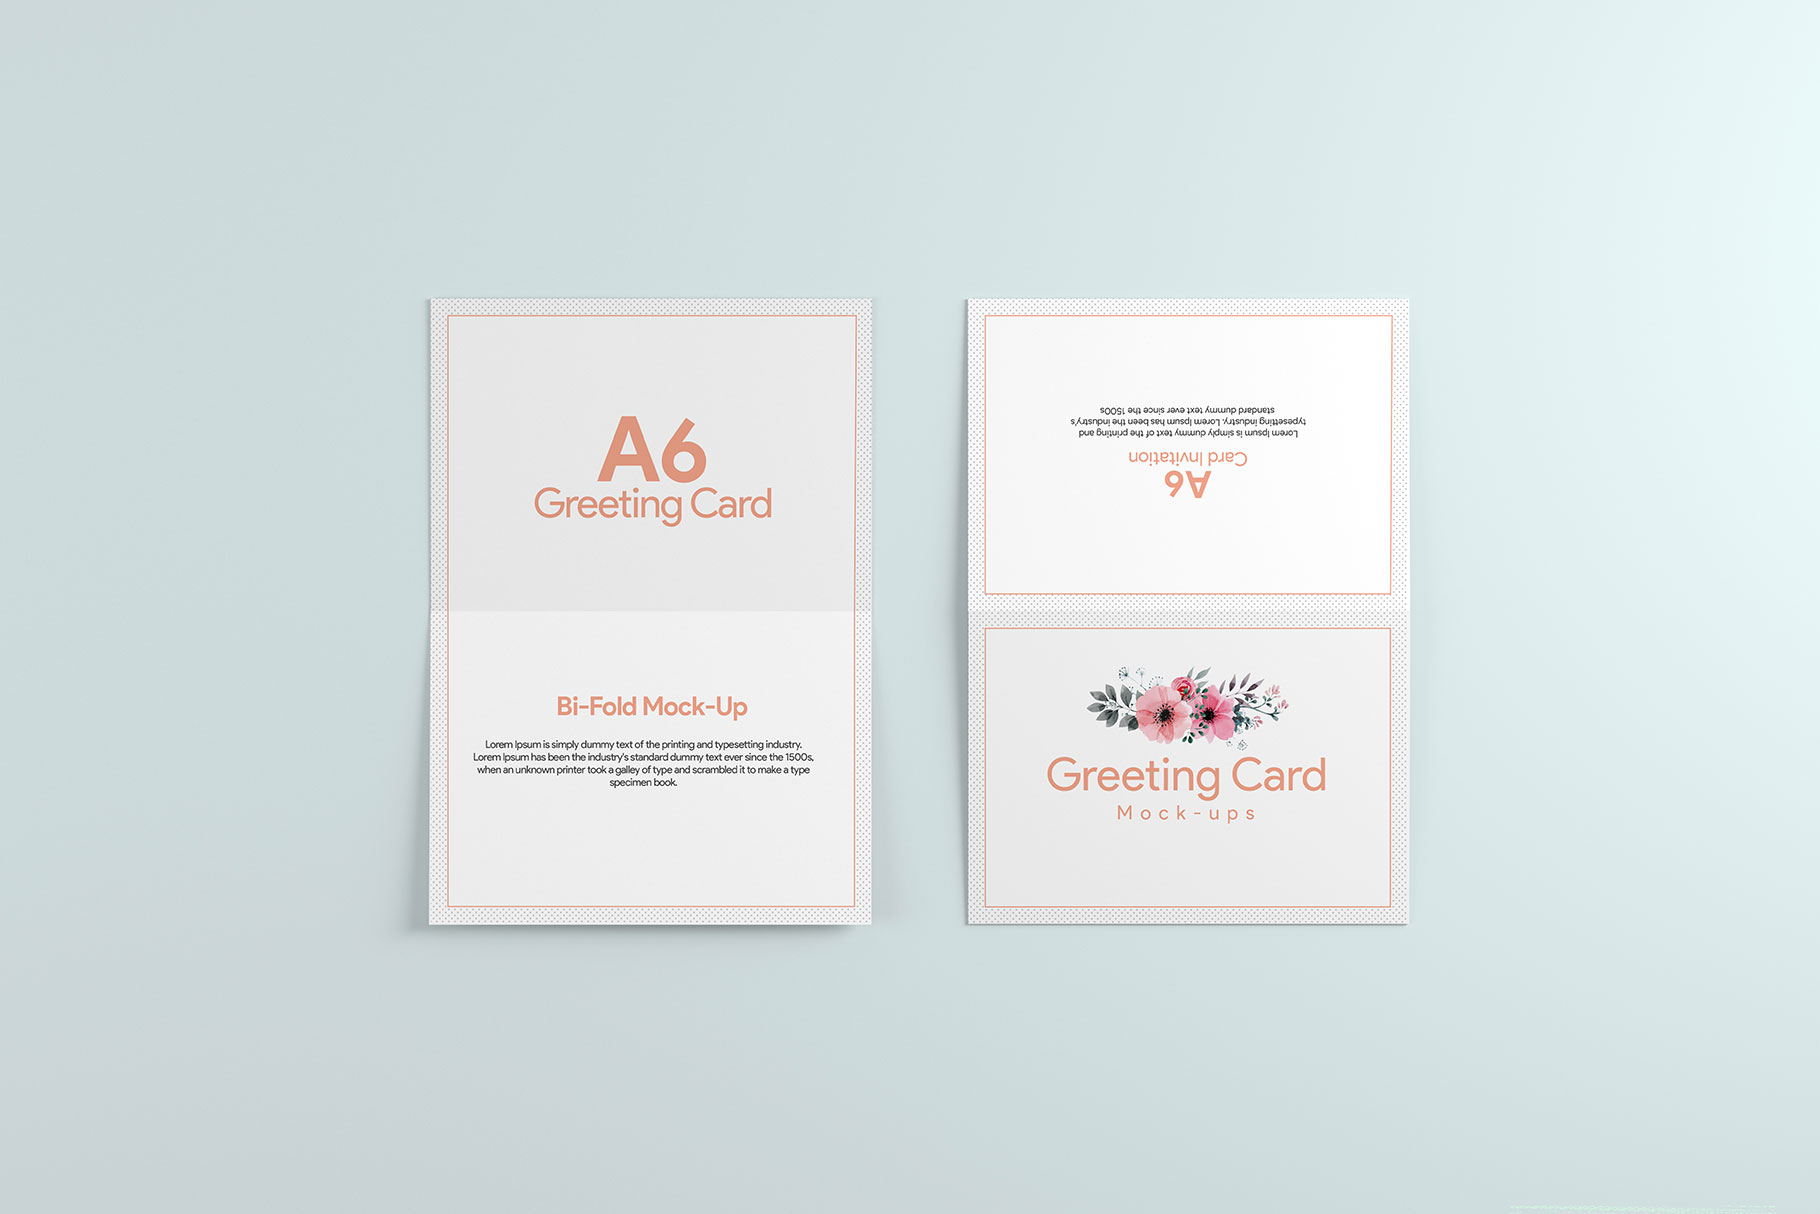 A6 Greeting Card Invitation X2 example image 1